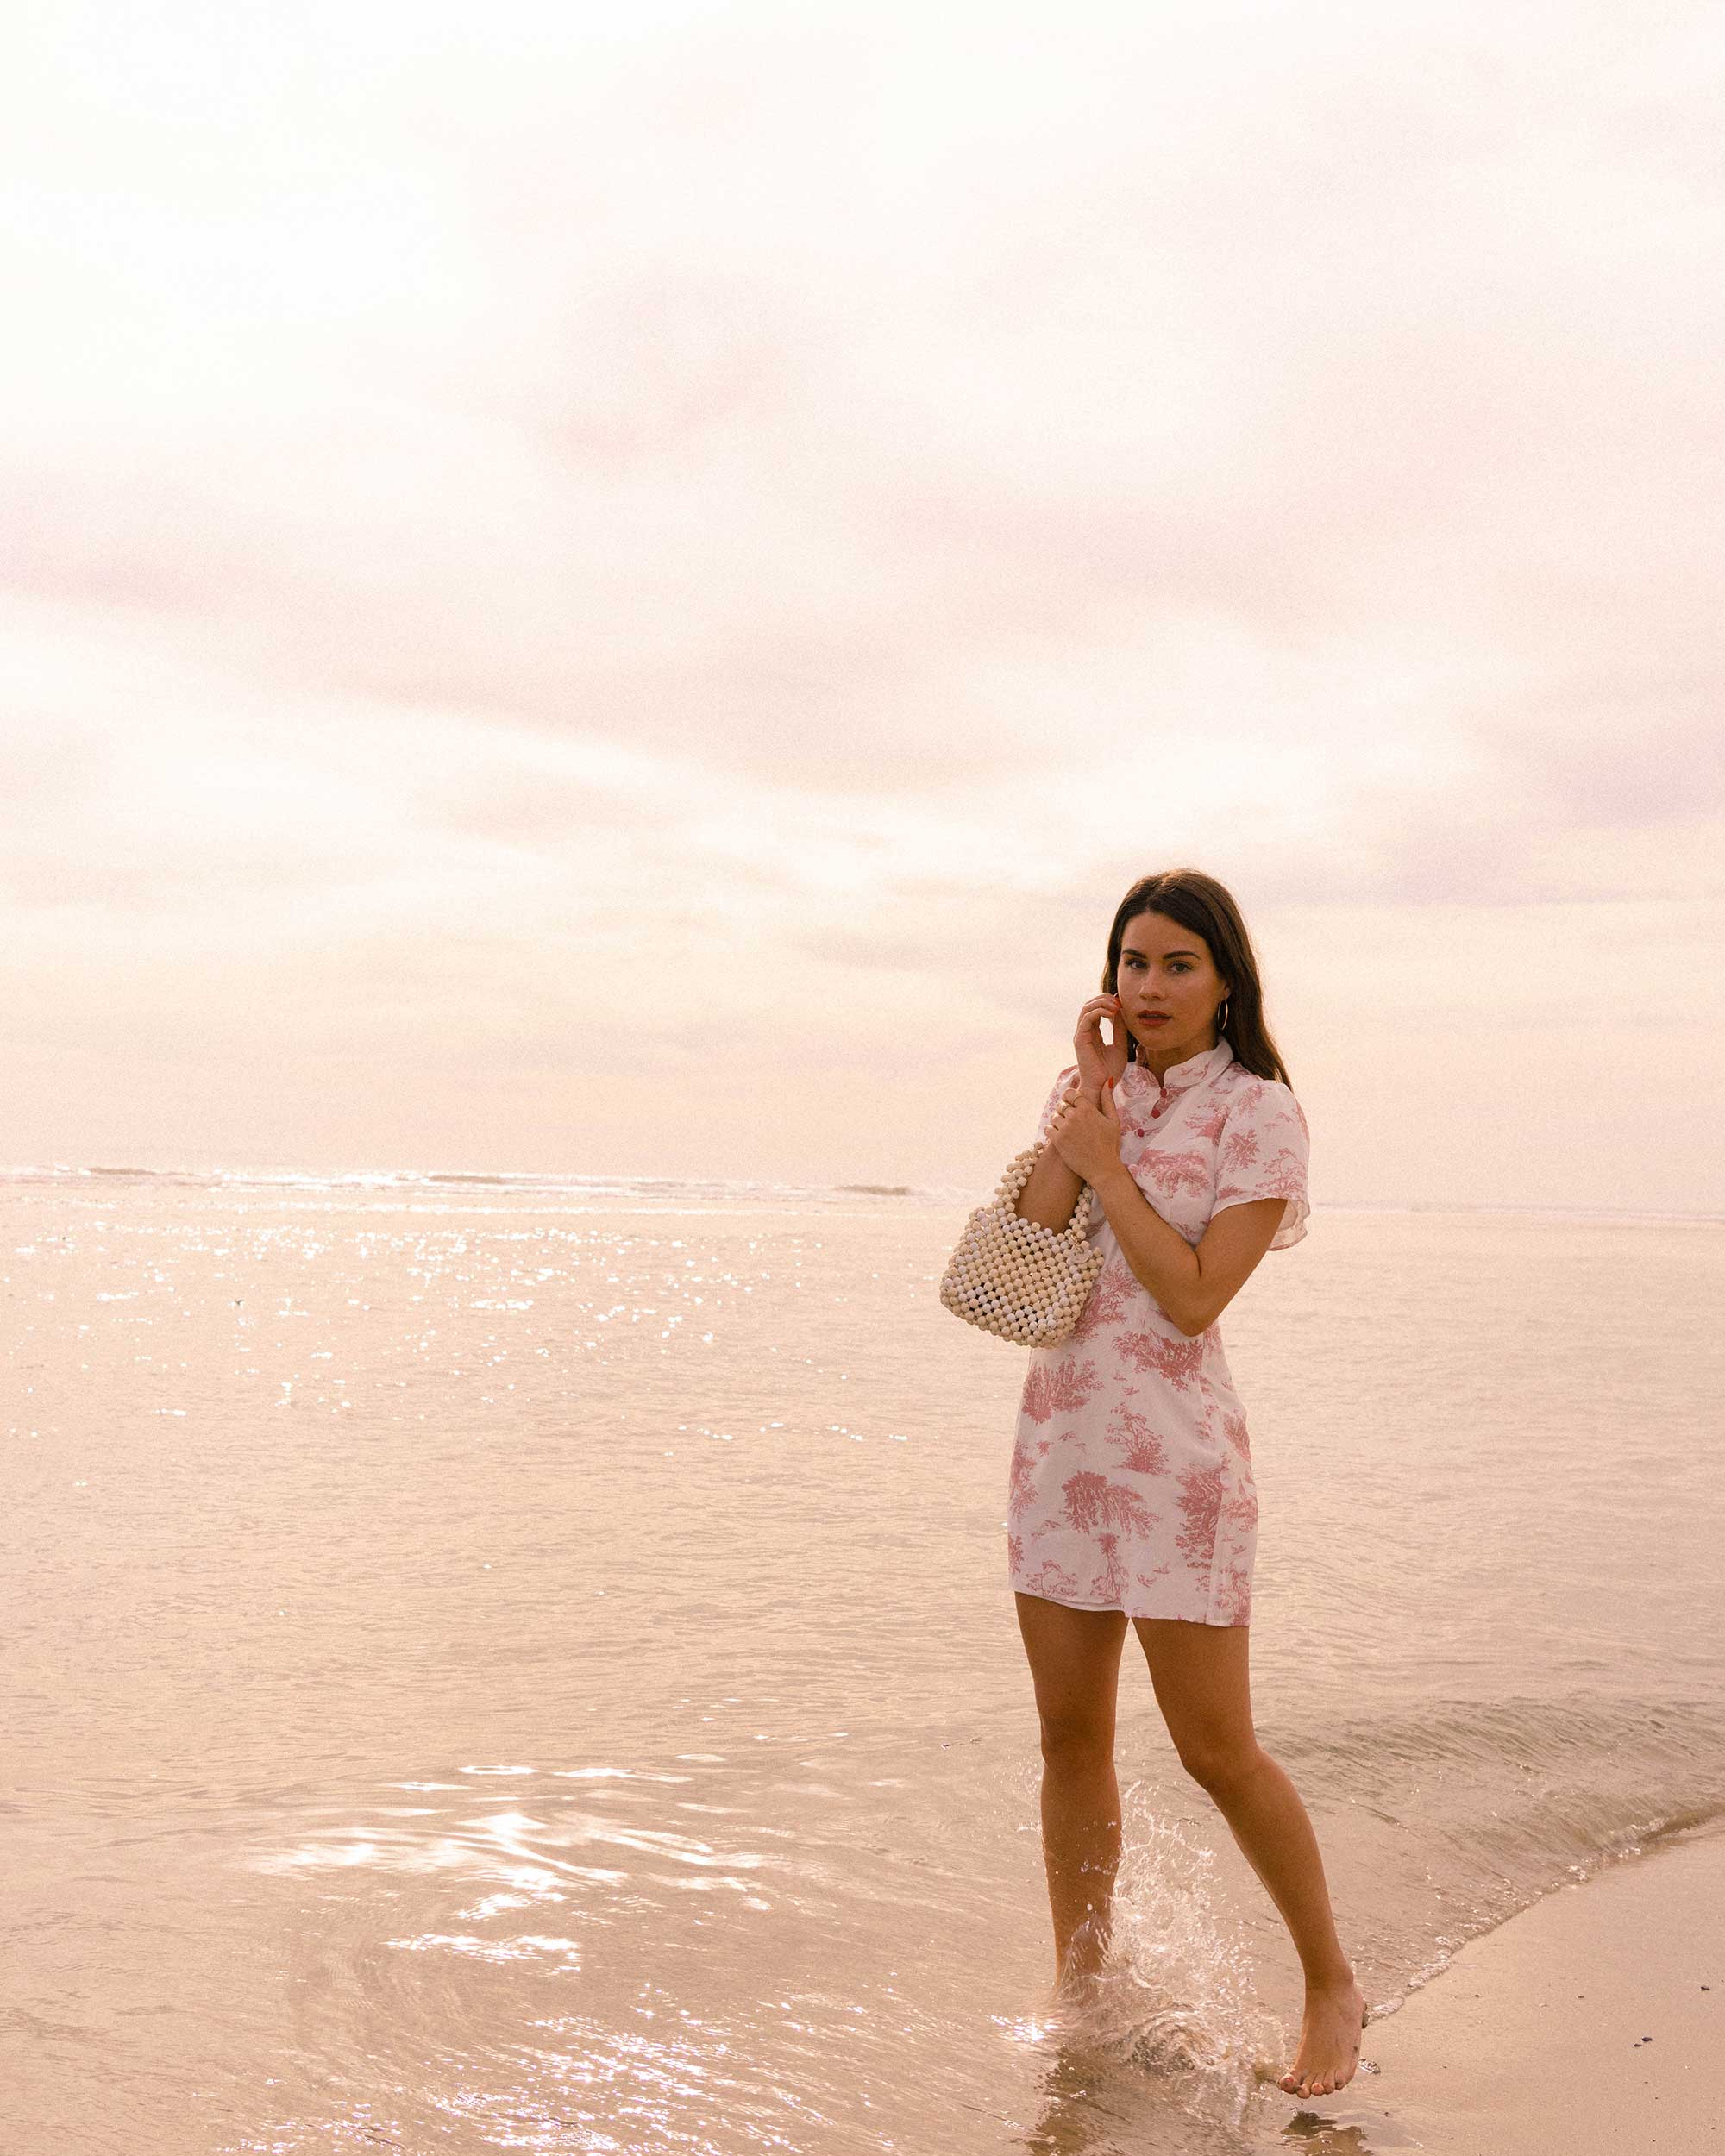 Sarah Butler of Sarah Styles Seattle wears Stone Cold Fox Lure Pink Toile Print Mini Dress in Newport Beach, California for the perfect spring outfit | @sarahchristine -7.jpg